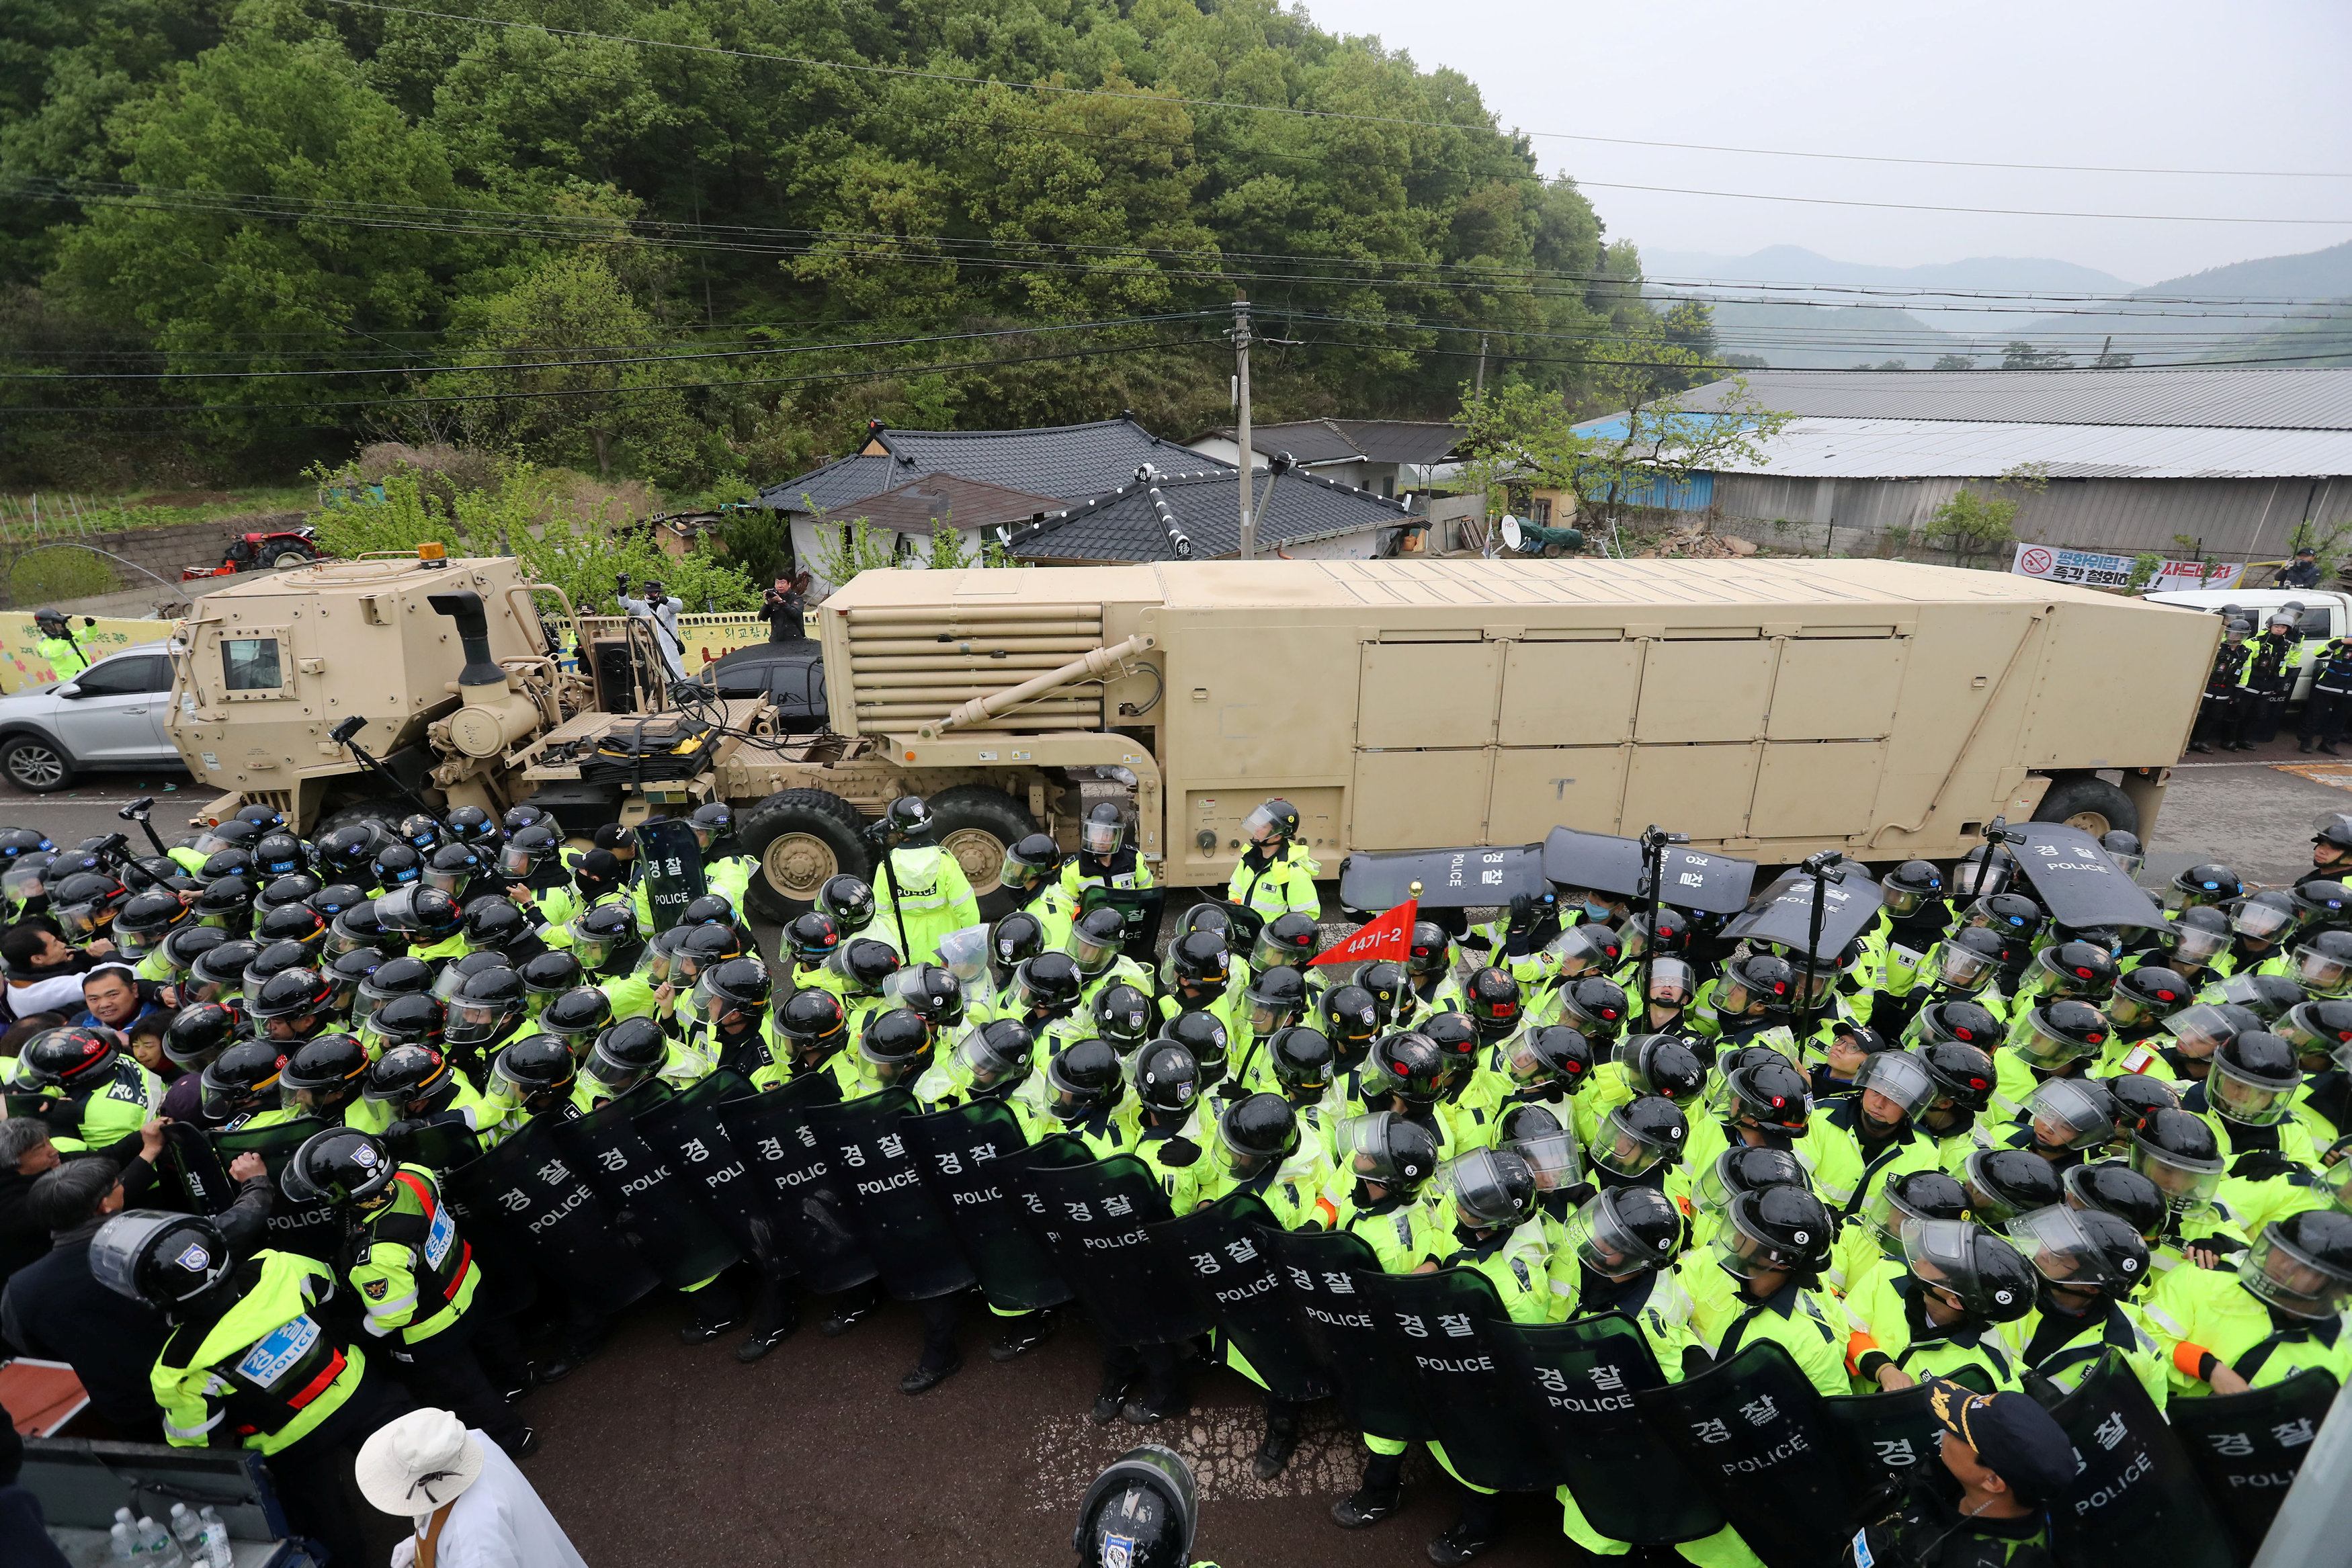 A U.S. military vehicle which is a part of Terminal High Altitude Area Defense (THAAD) system arrives in Seongju, South Korea, April 26, 2017. Kim Jun-beom/Yonhap via REUTERS